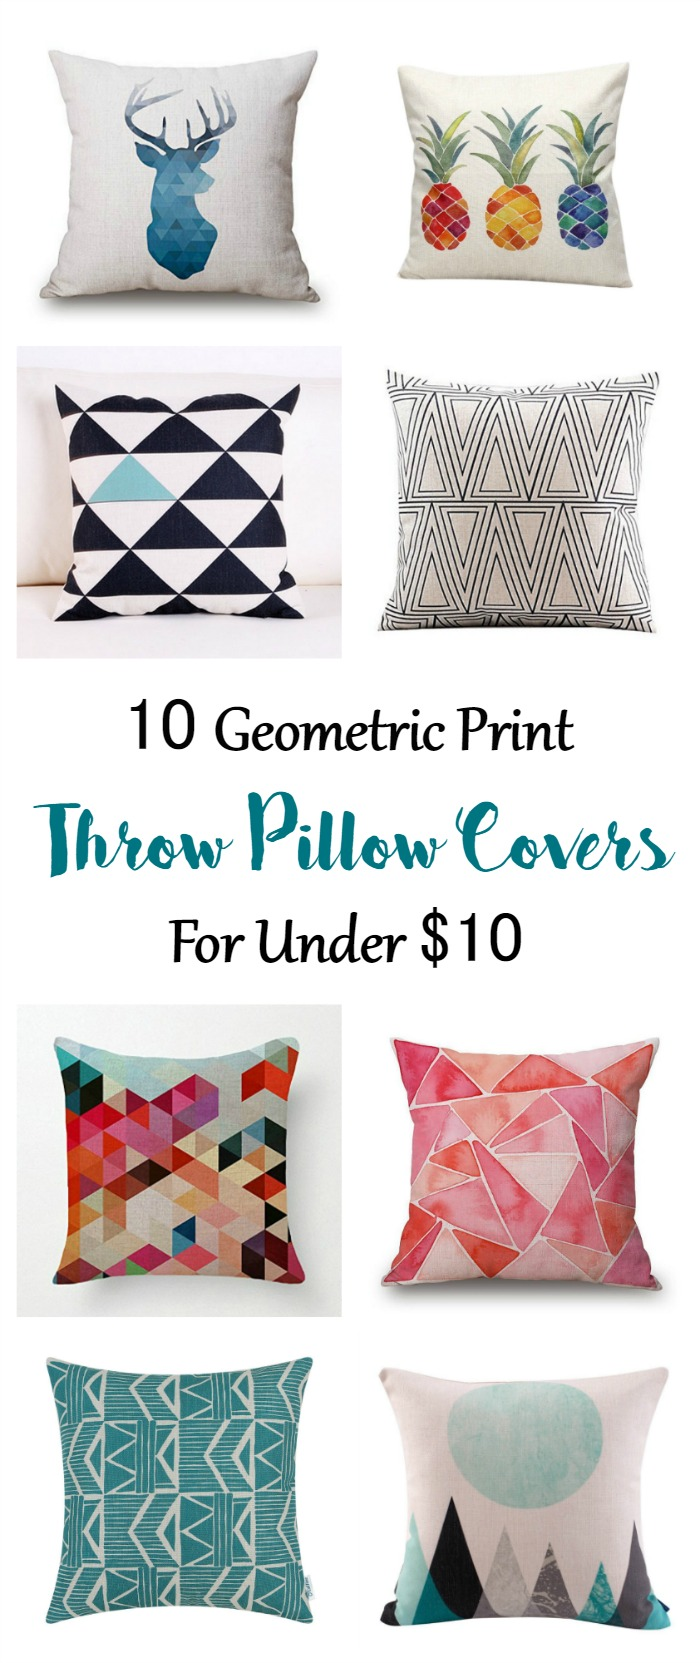 10 beautiful geometric print throw pillow covers for under $10!